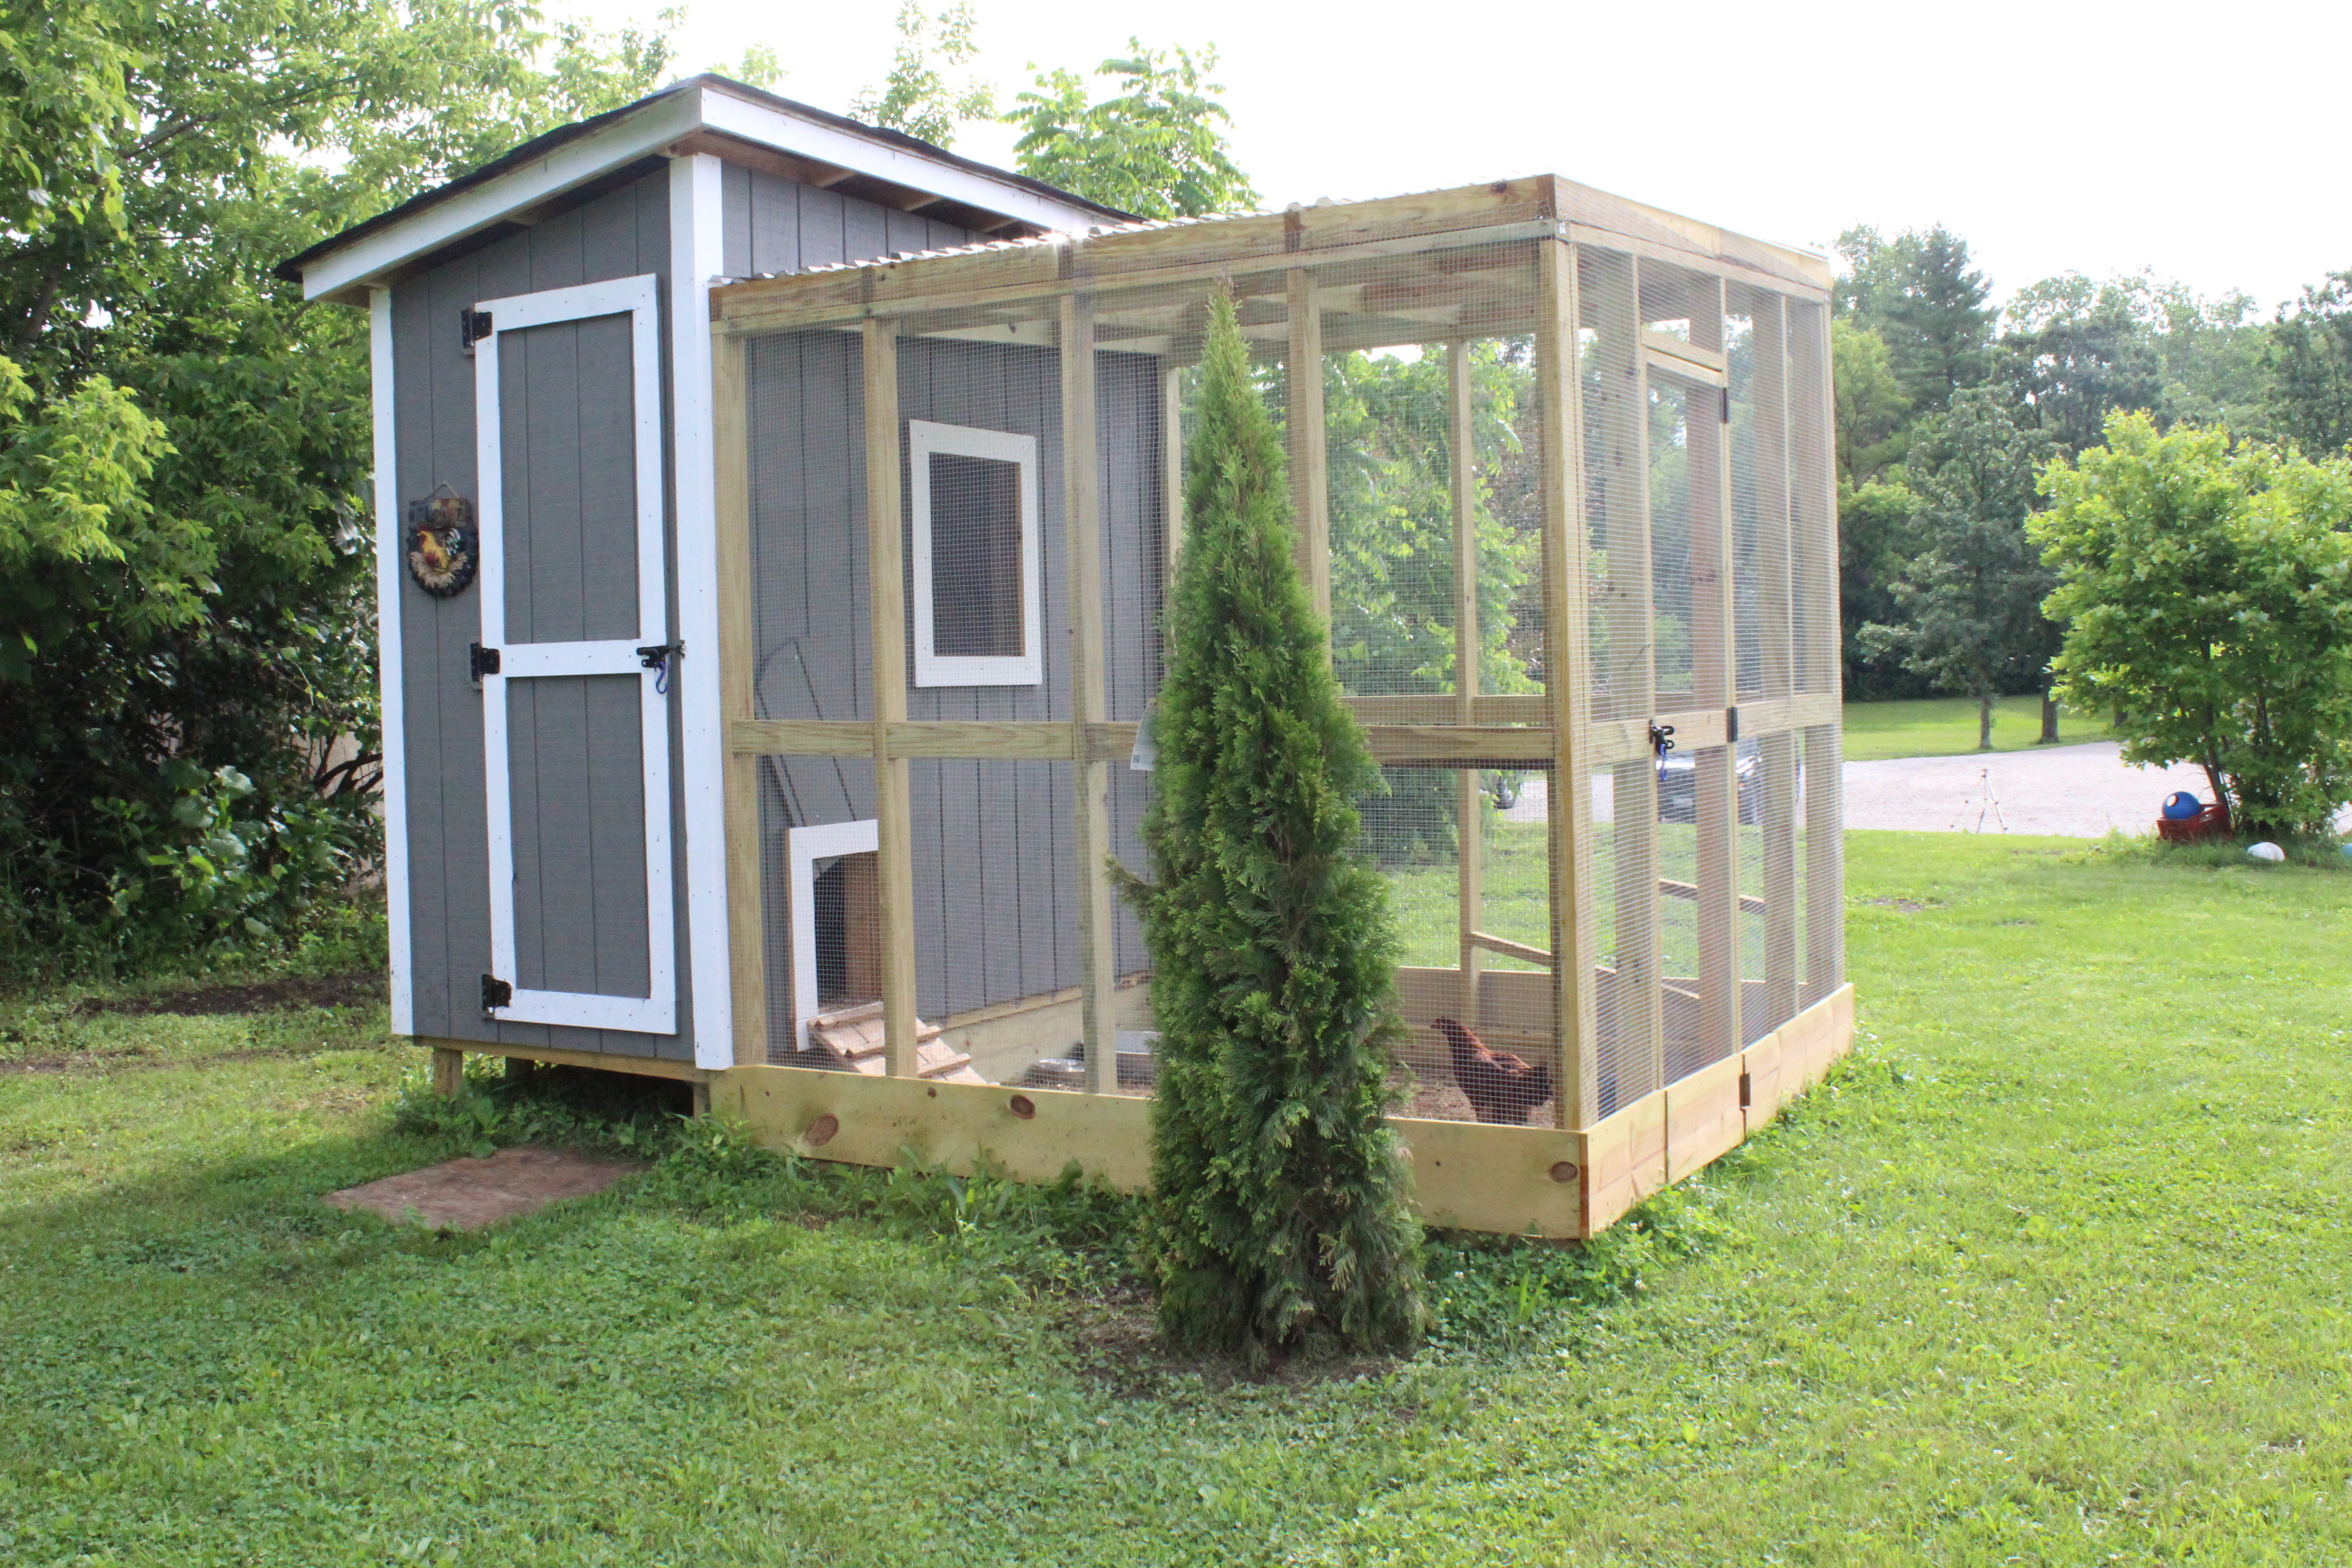 Backyard chicken house chicken coops for backyard flocks for Plans for a chicken coop for 12 chickens